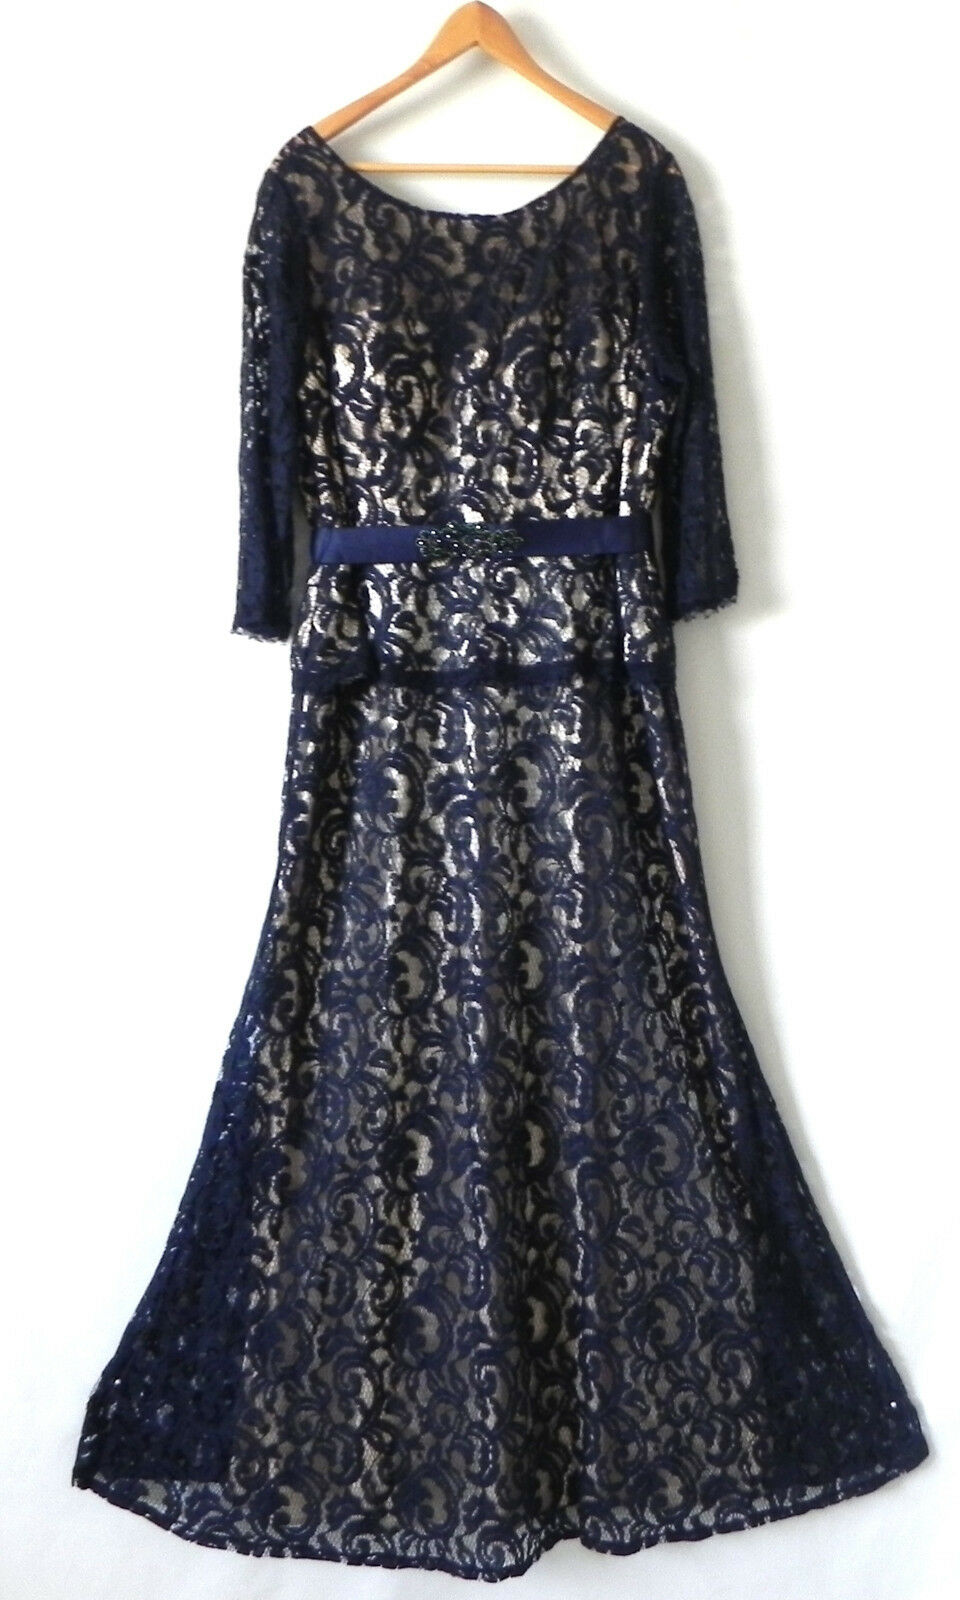 EVA USA Evening Dress Maxi Navy bluee Lace Belted 3 4 Sleeve Size 3XL